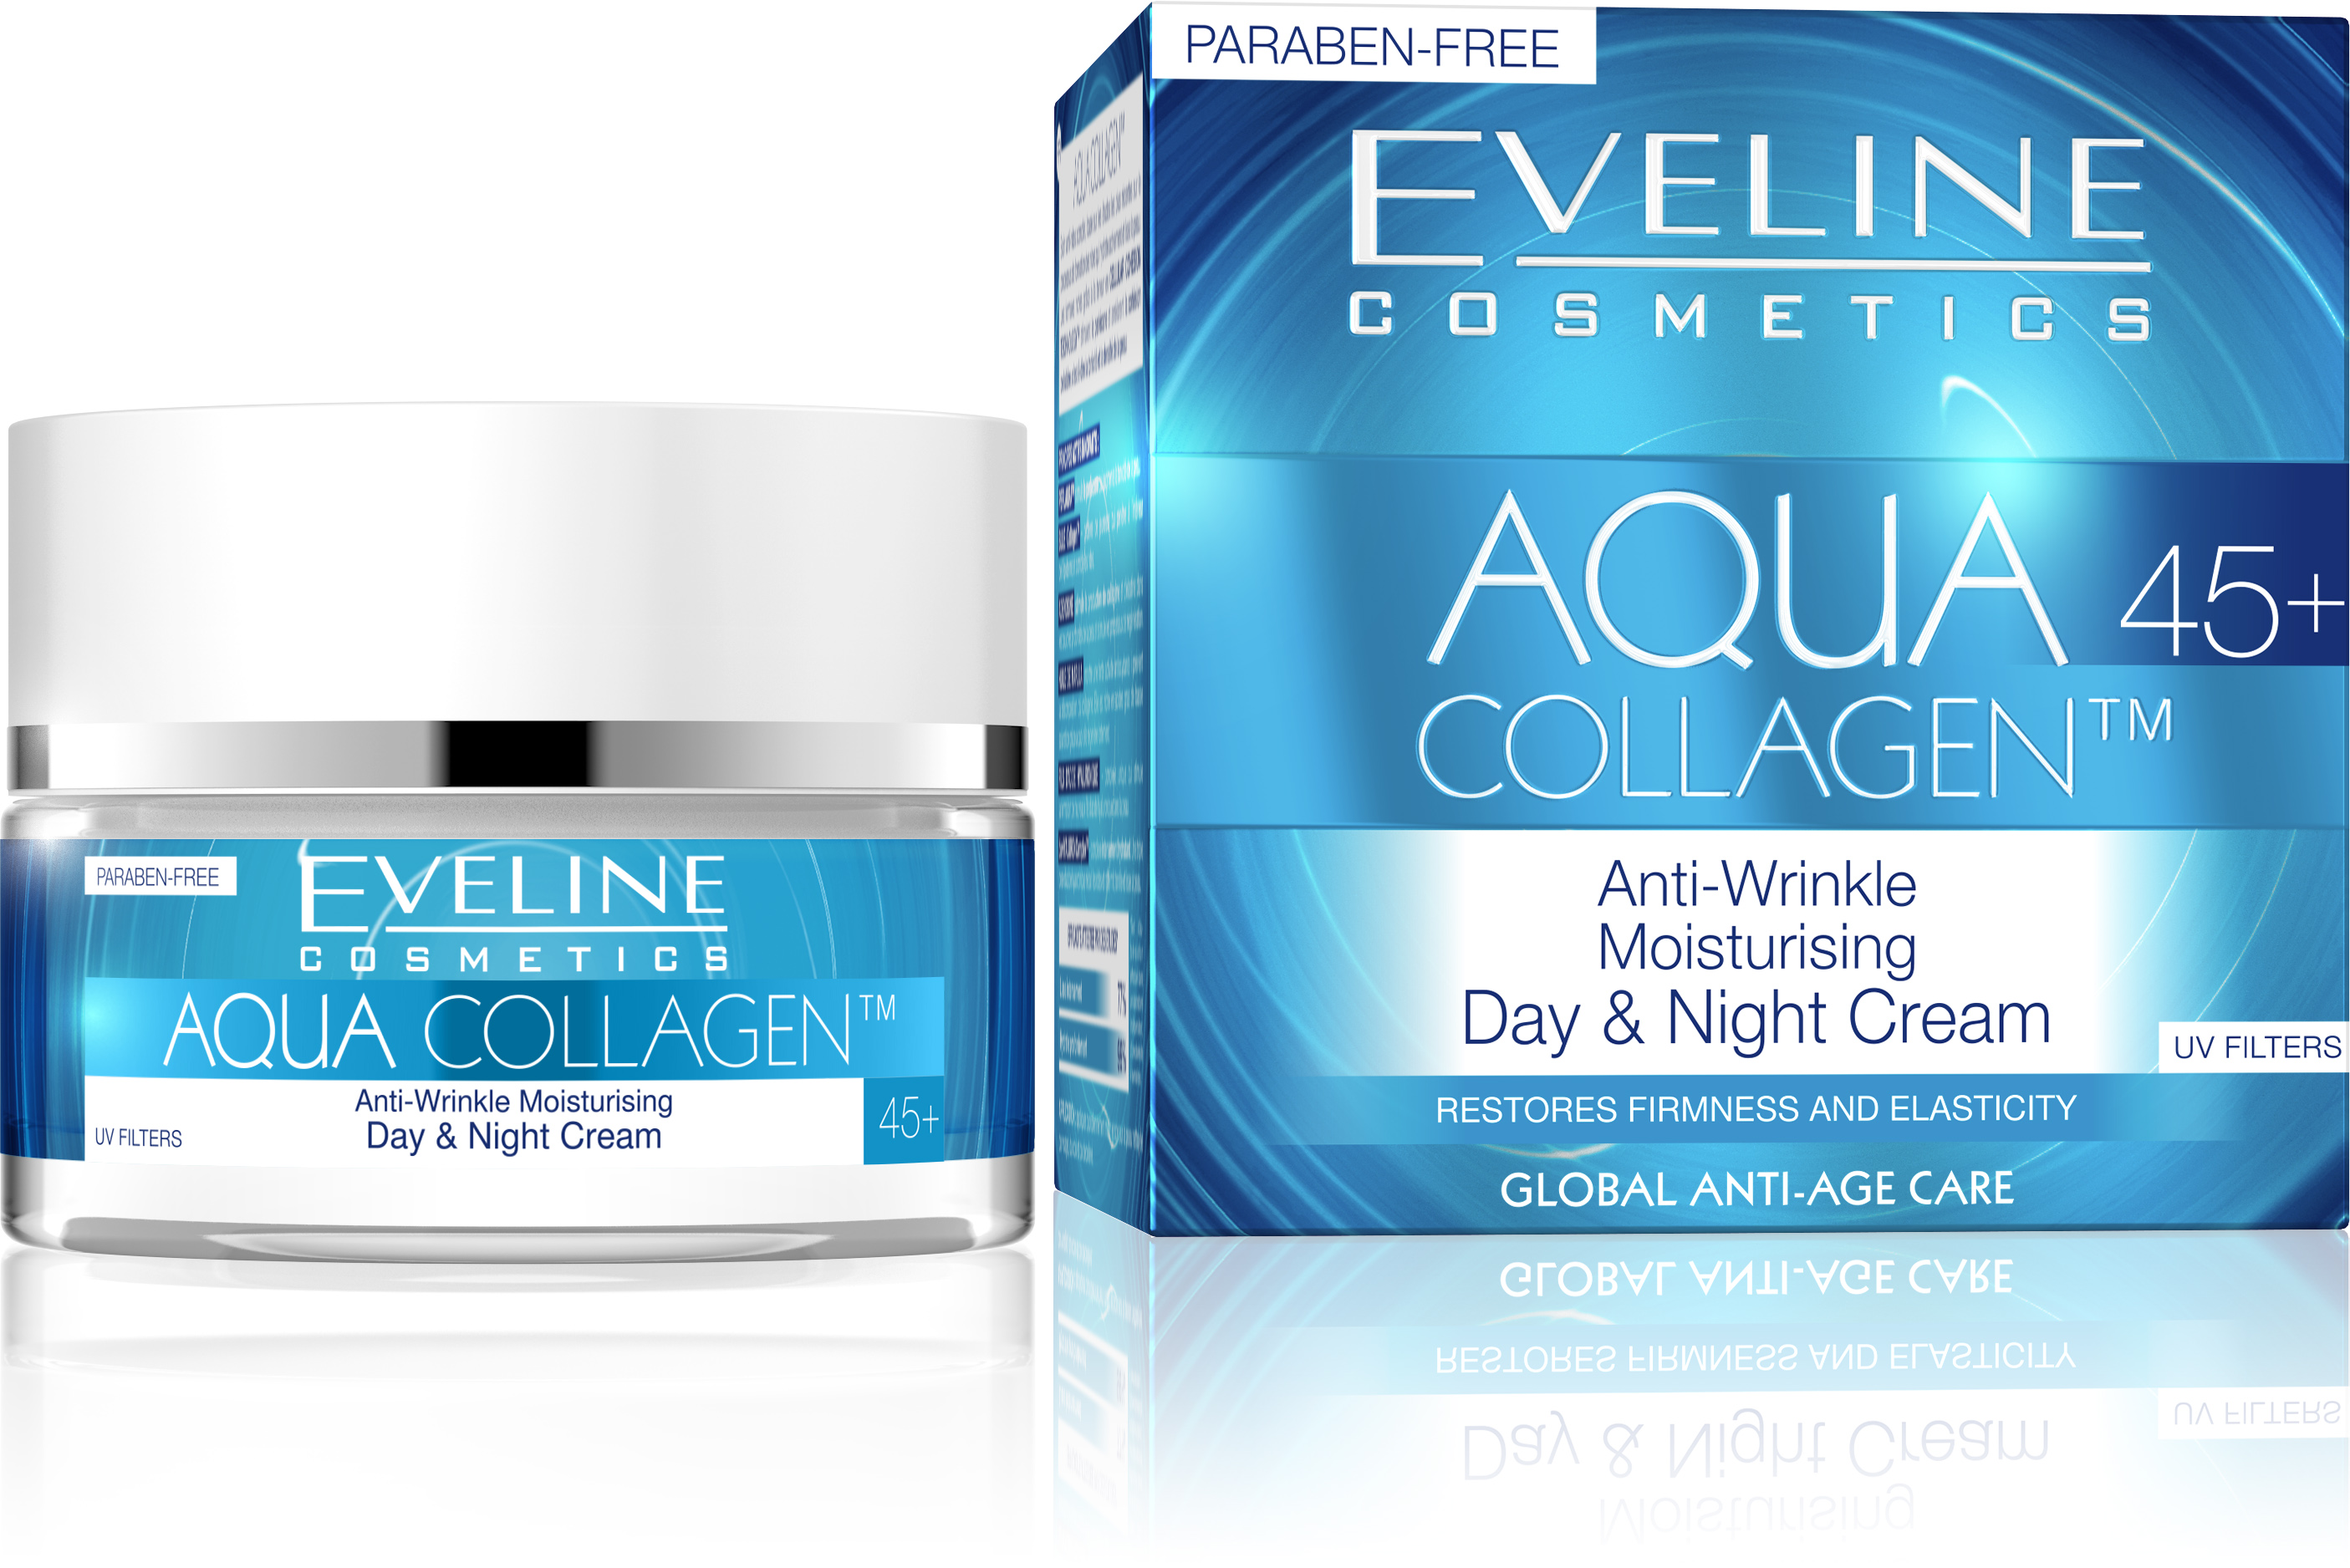 Eveline Cosmetics Aqua Collagen Intensely Lifting Moisturizing Day & Night Cream 45+ clinical care skin solutions sugar lips